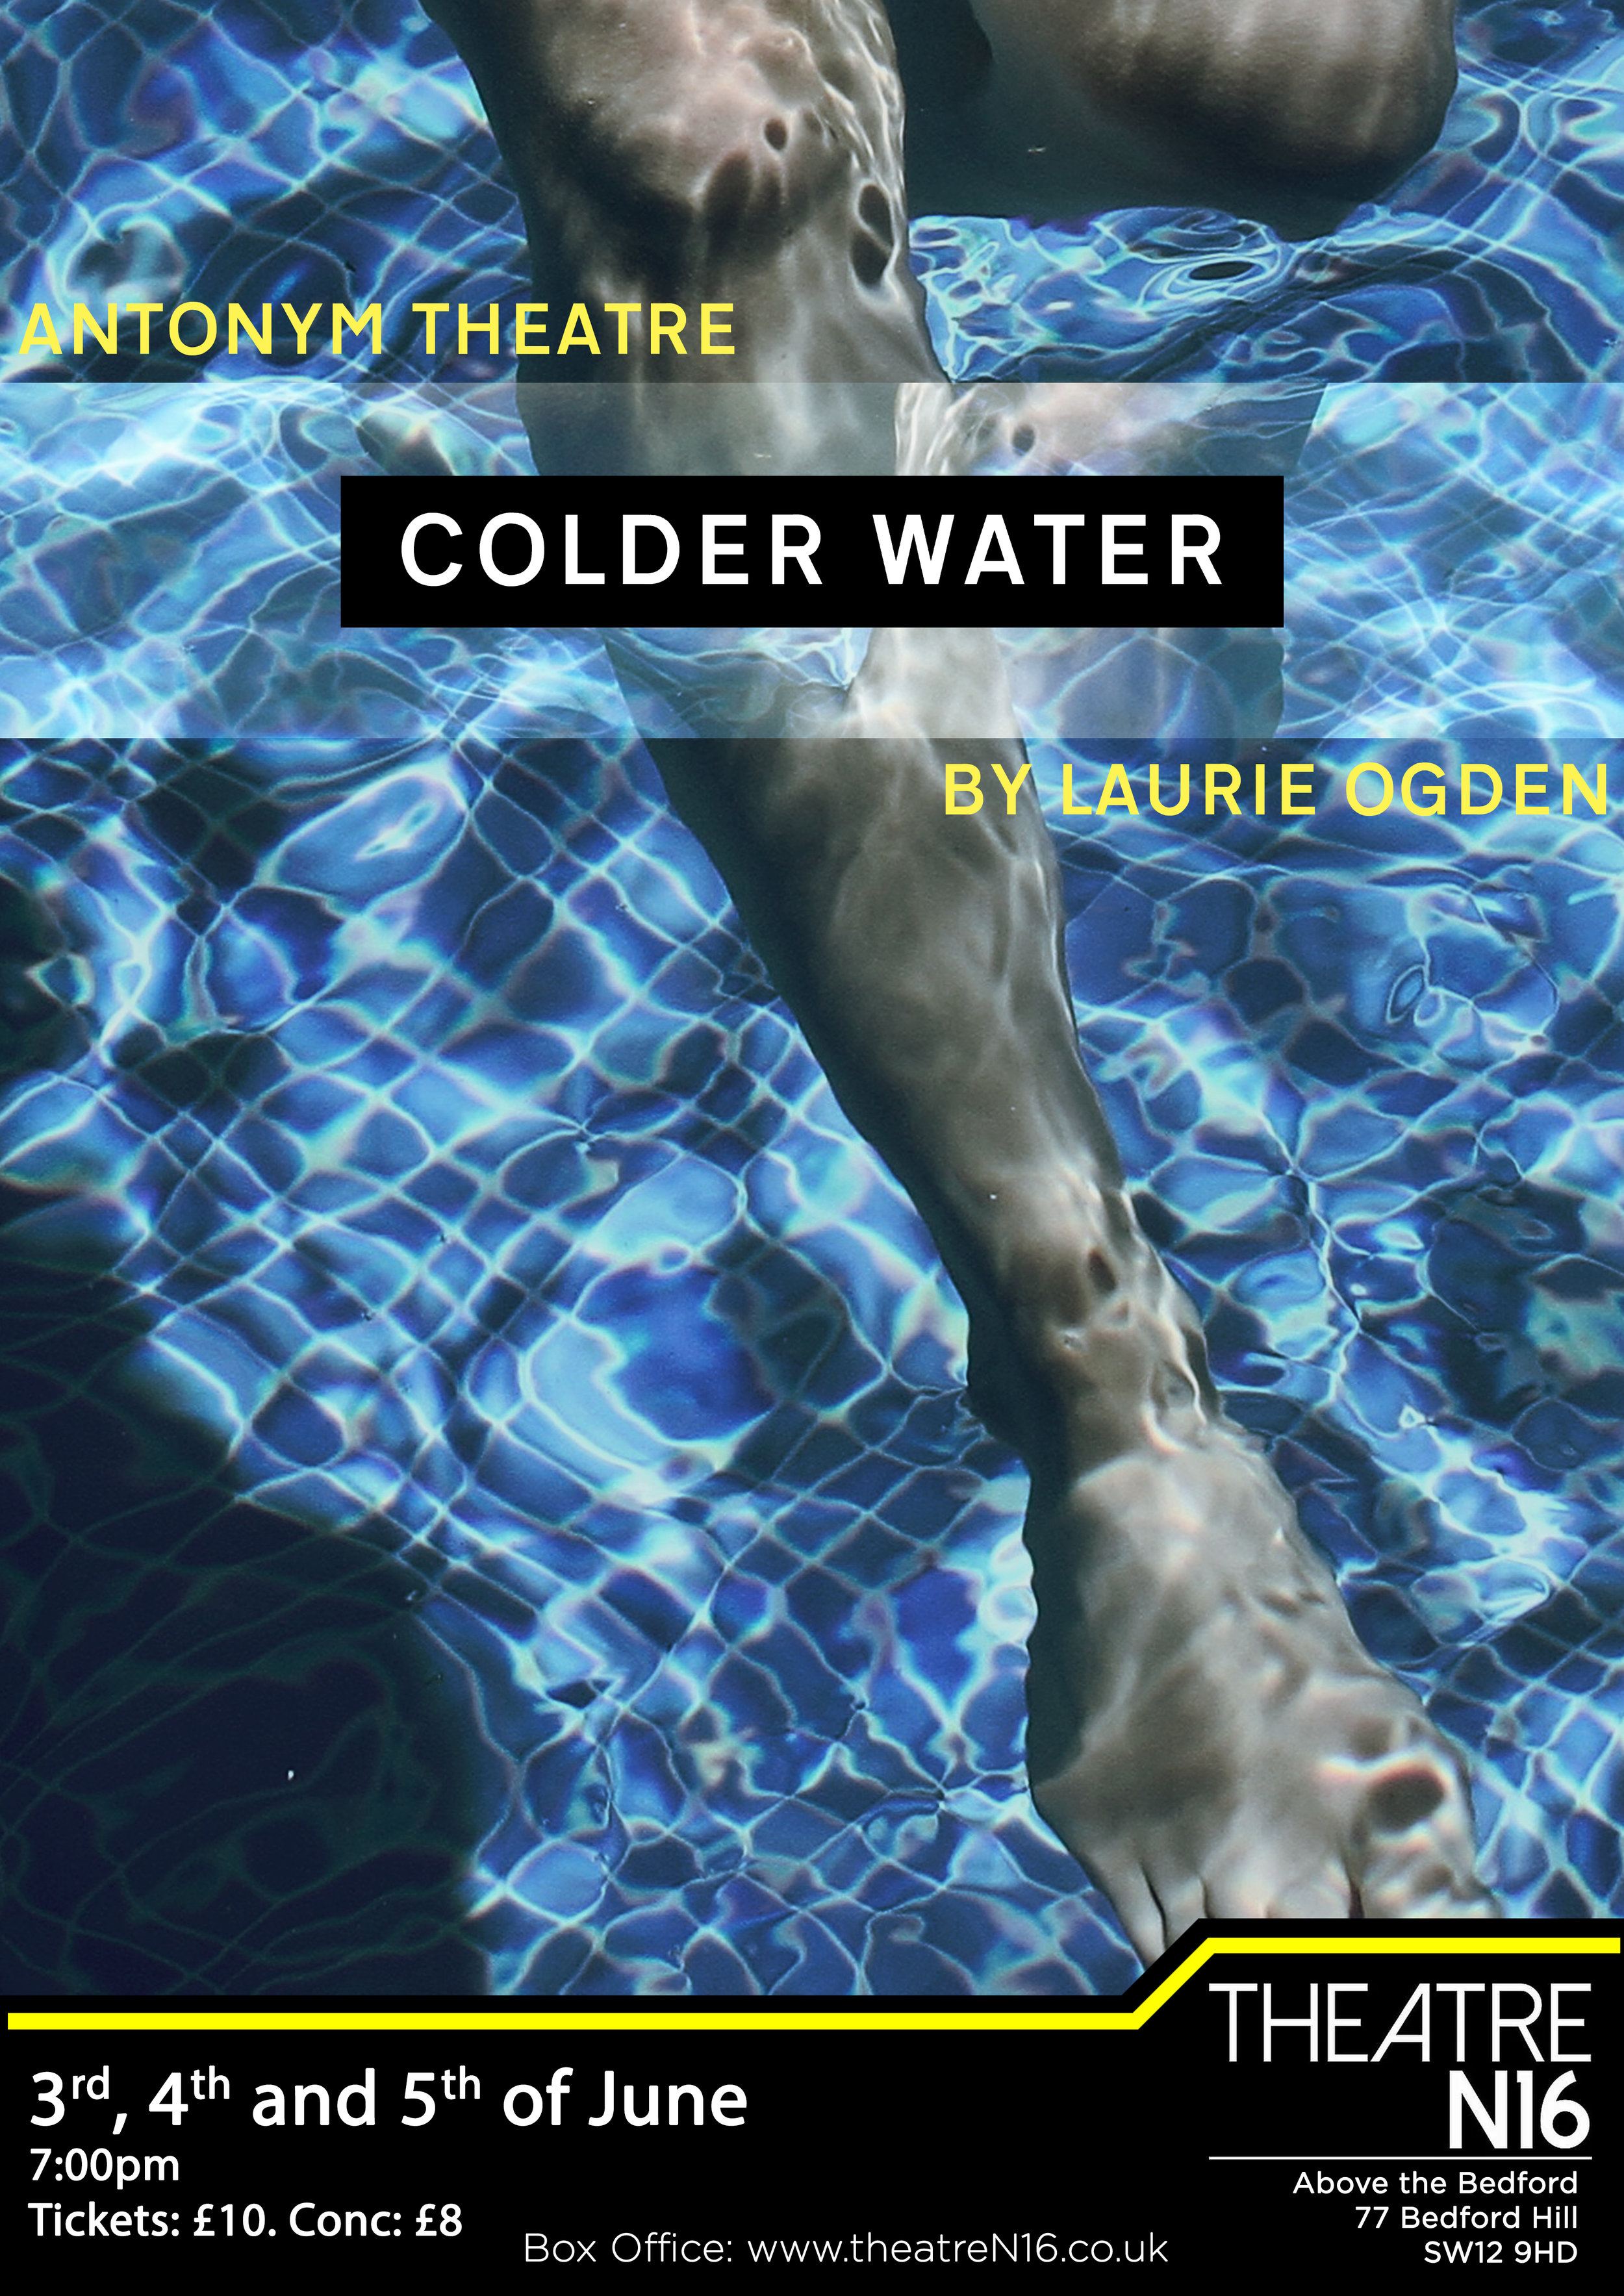 Colder Water Final 1 with footer.jpg